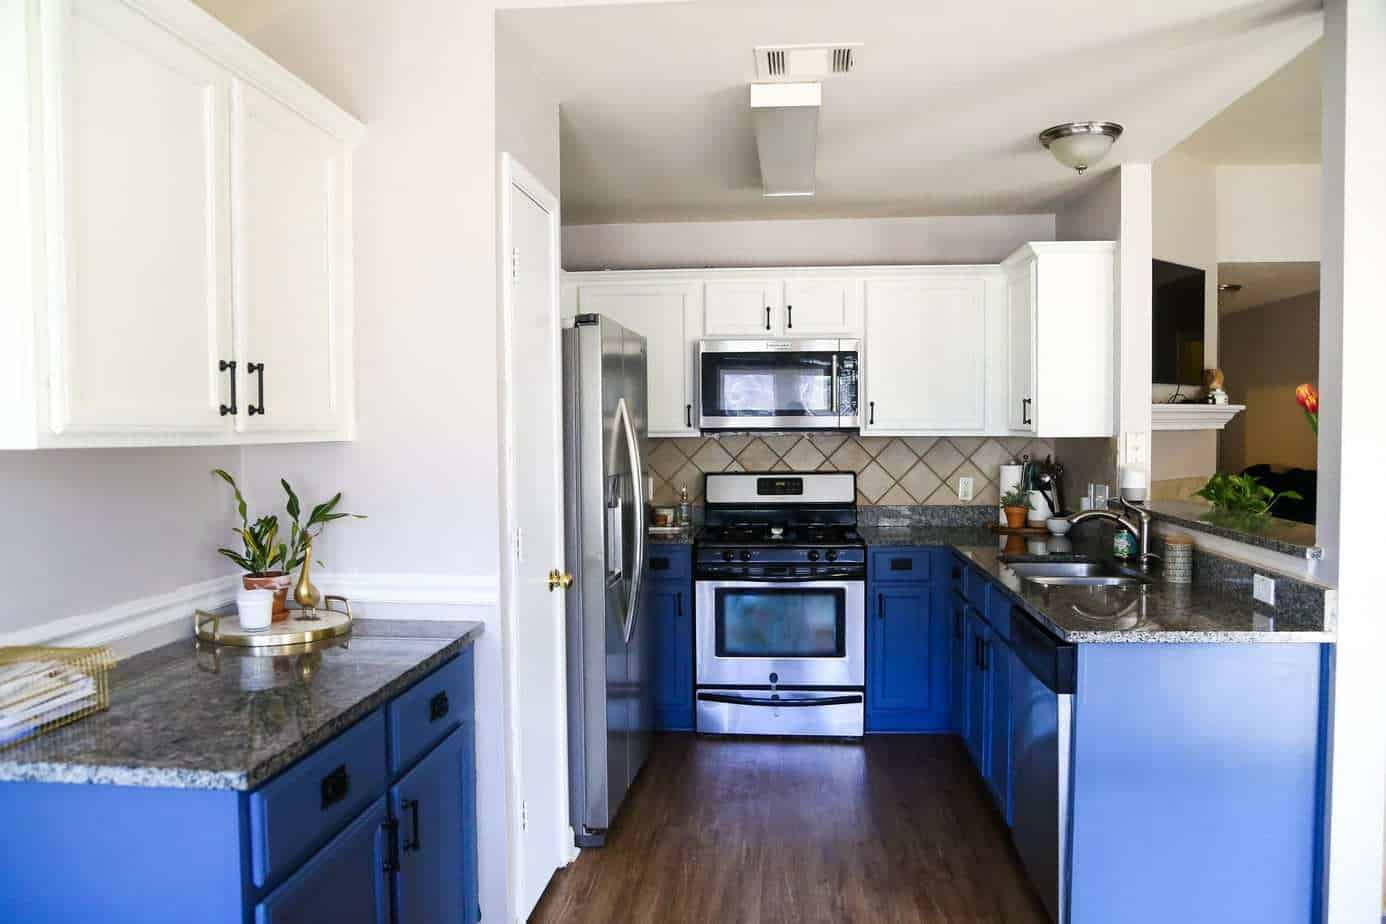 Painting blue and white kitchen cabinets & Our DIY Blue u0026 White Kitchen Cabinets - Love u0026 Renovations